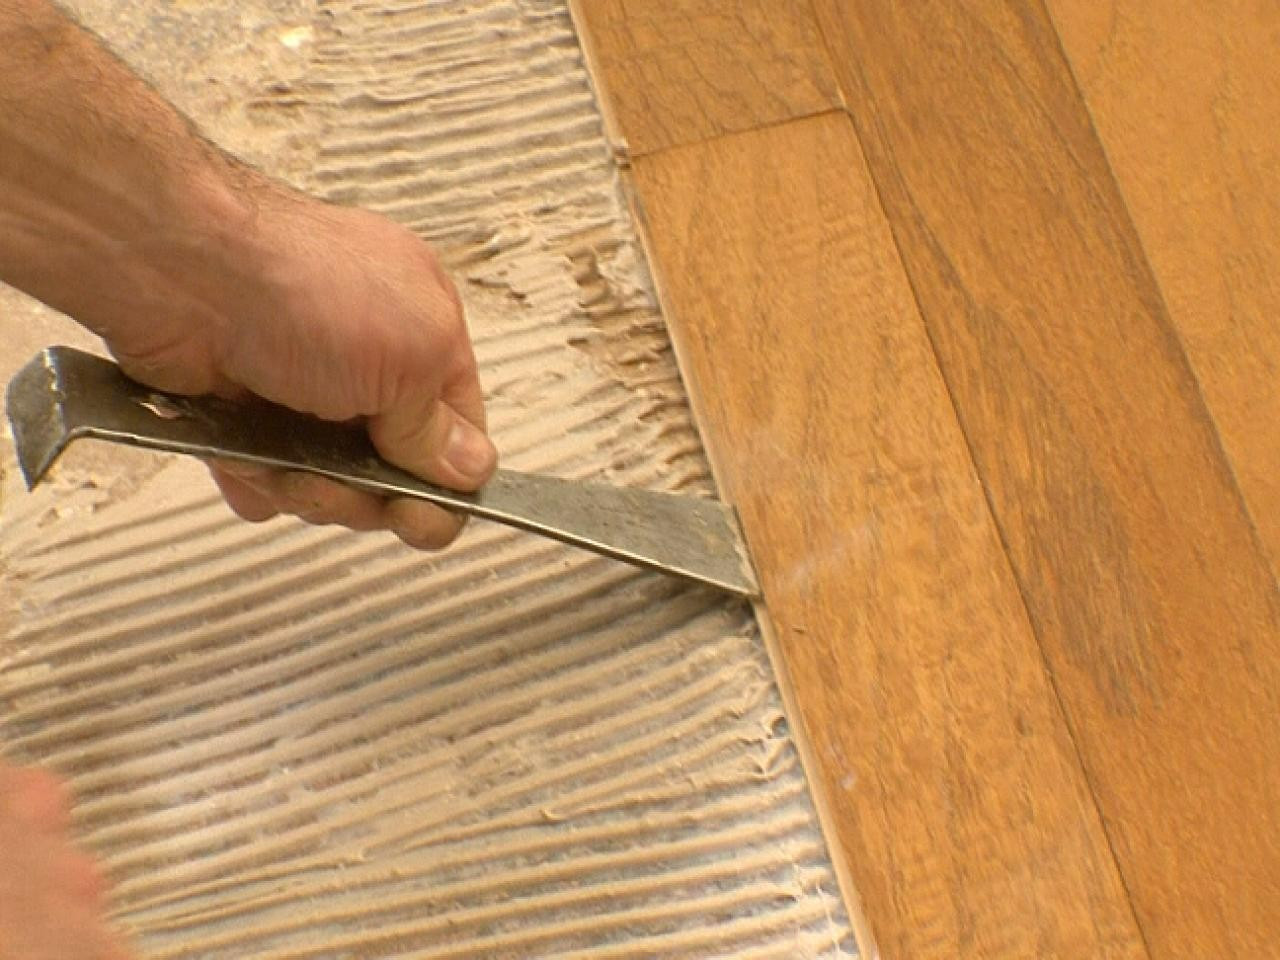 installing engineered hardwood floors on concrete slab of 17 new cost of hardwood floor installation pics dizpos com with regard to cost of hardwood floor installation new average cost engineered wood flooring per square foot flooring stock